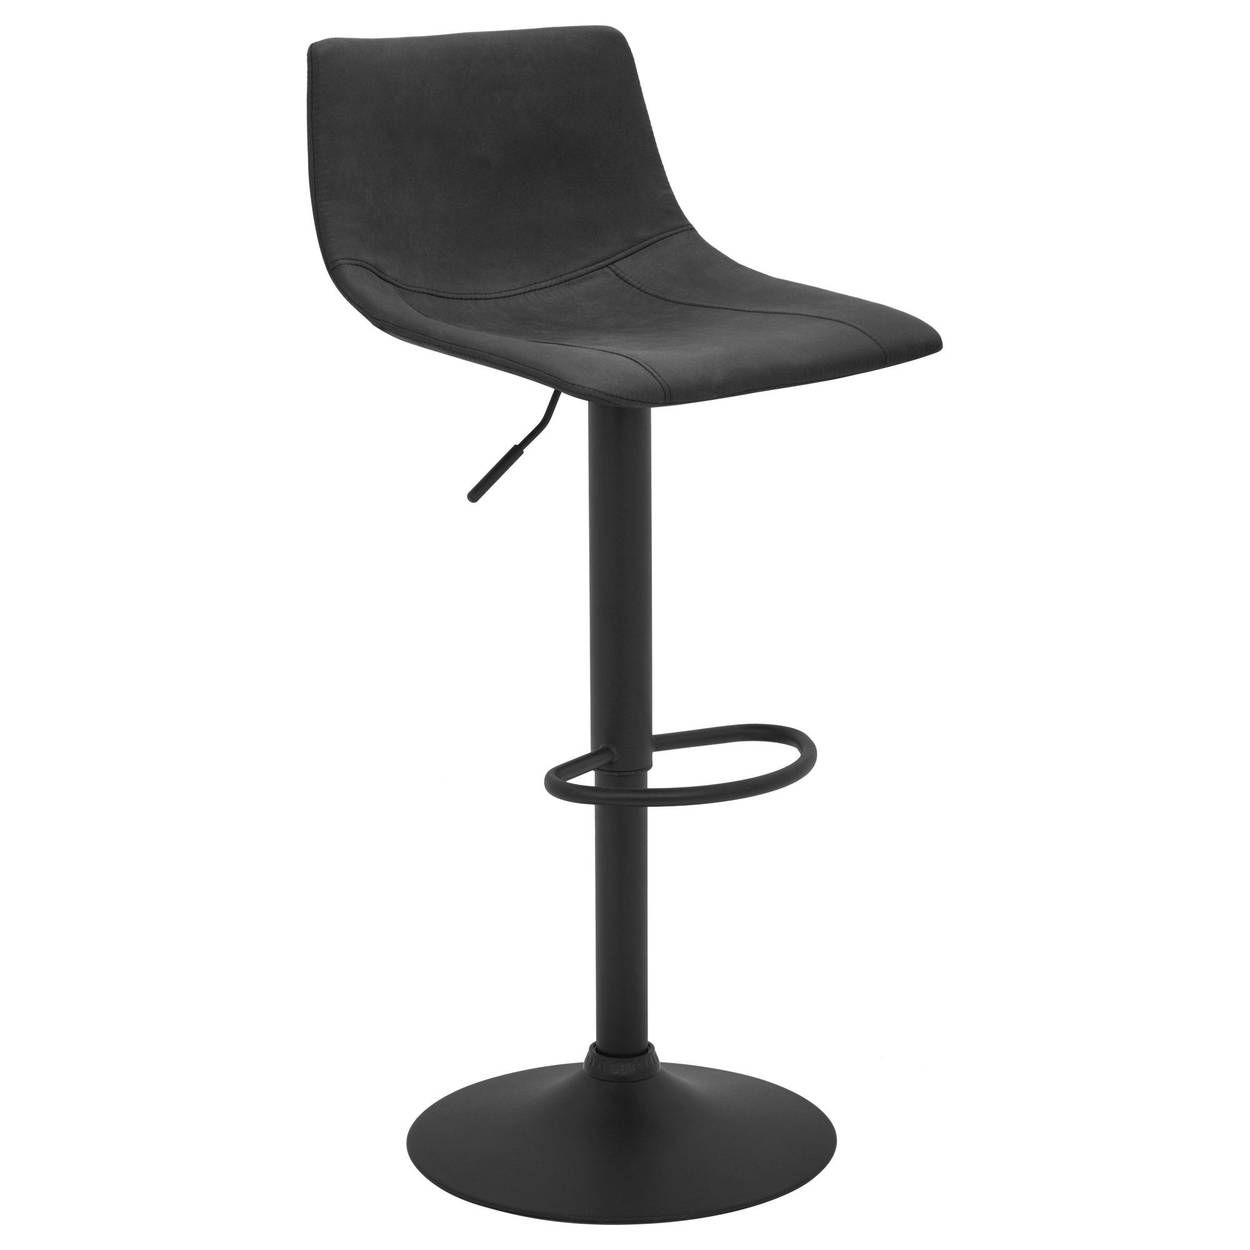 Pleasing Textured Faux Leather Metal Adjustable Bar Stool New Beatyapartments Chair Design Images Beatyapartmentscom